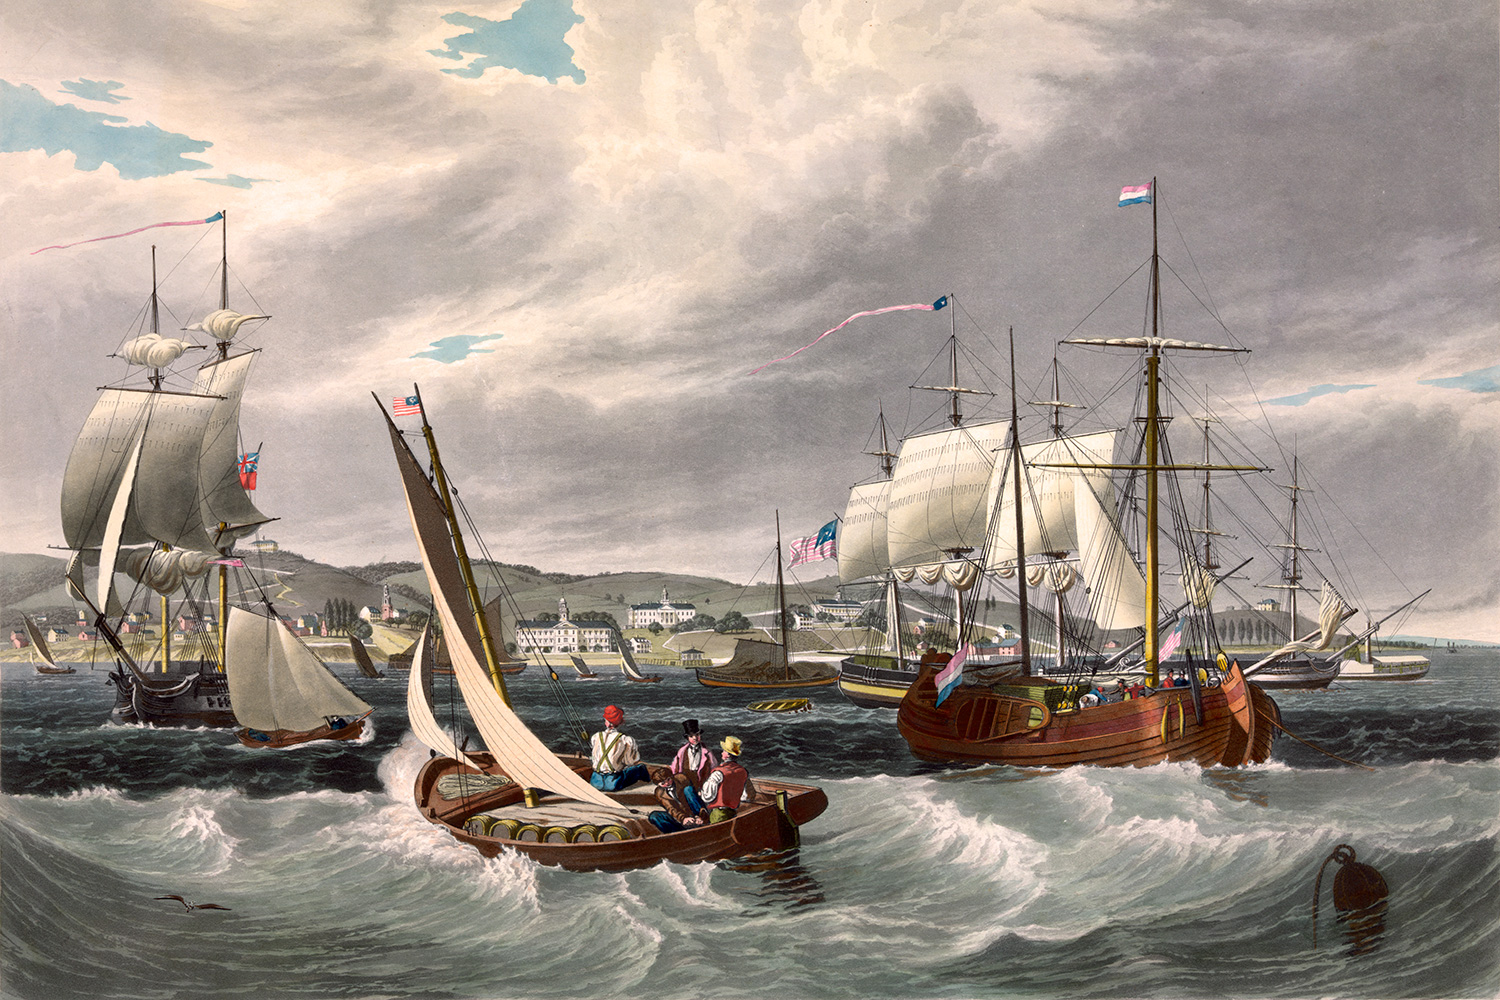 Painting of the Staten Island Quarantine Facility—built in 1799 to care for yellow fever patients, where by the 1850s all passengers from newly arrived ships with signs of a disease were quarantined. The image is an oil painting showing a bustling waterway with lots of tall ships with sails lowered and smaller vessels ferrying cargo to them. GETTY IMAGES/Keith Lance